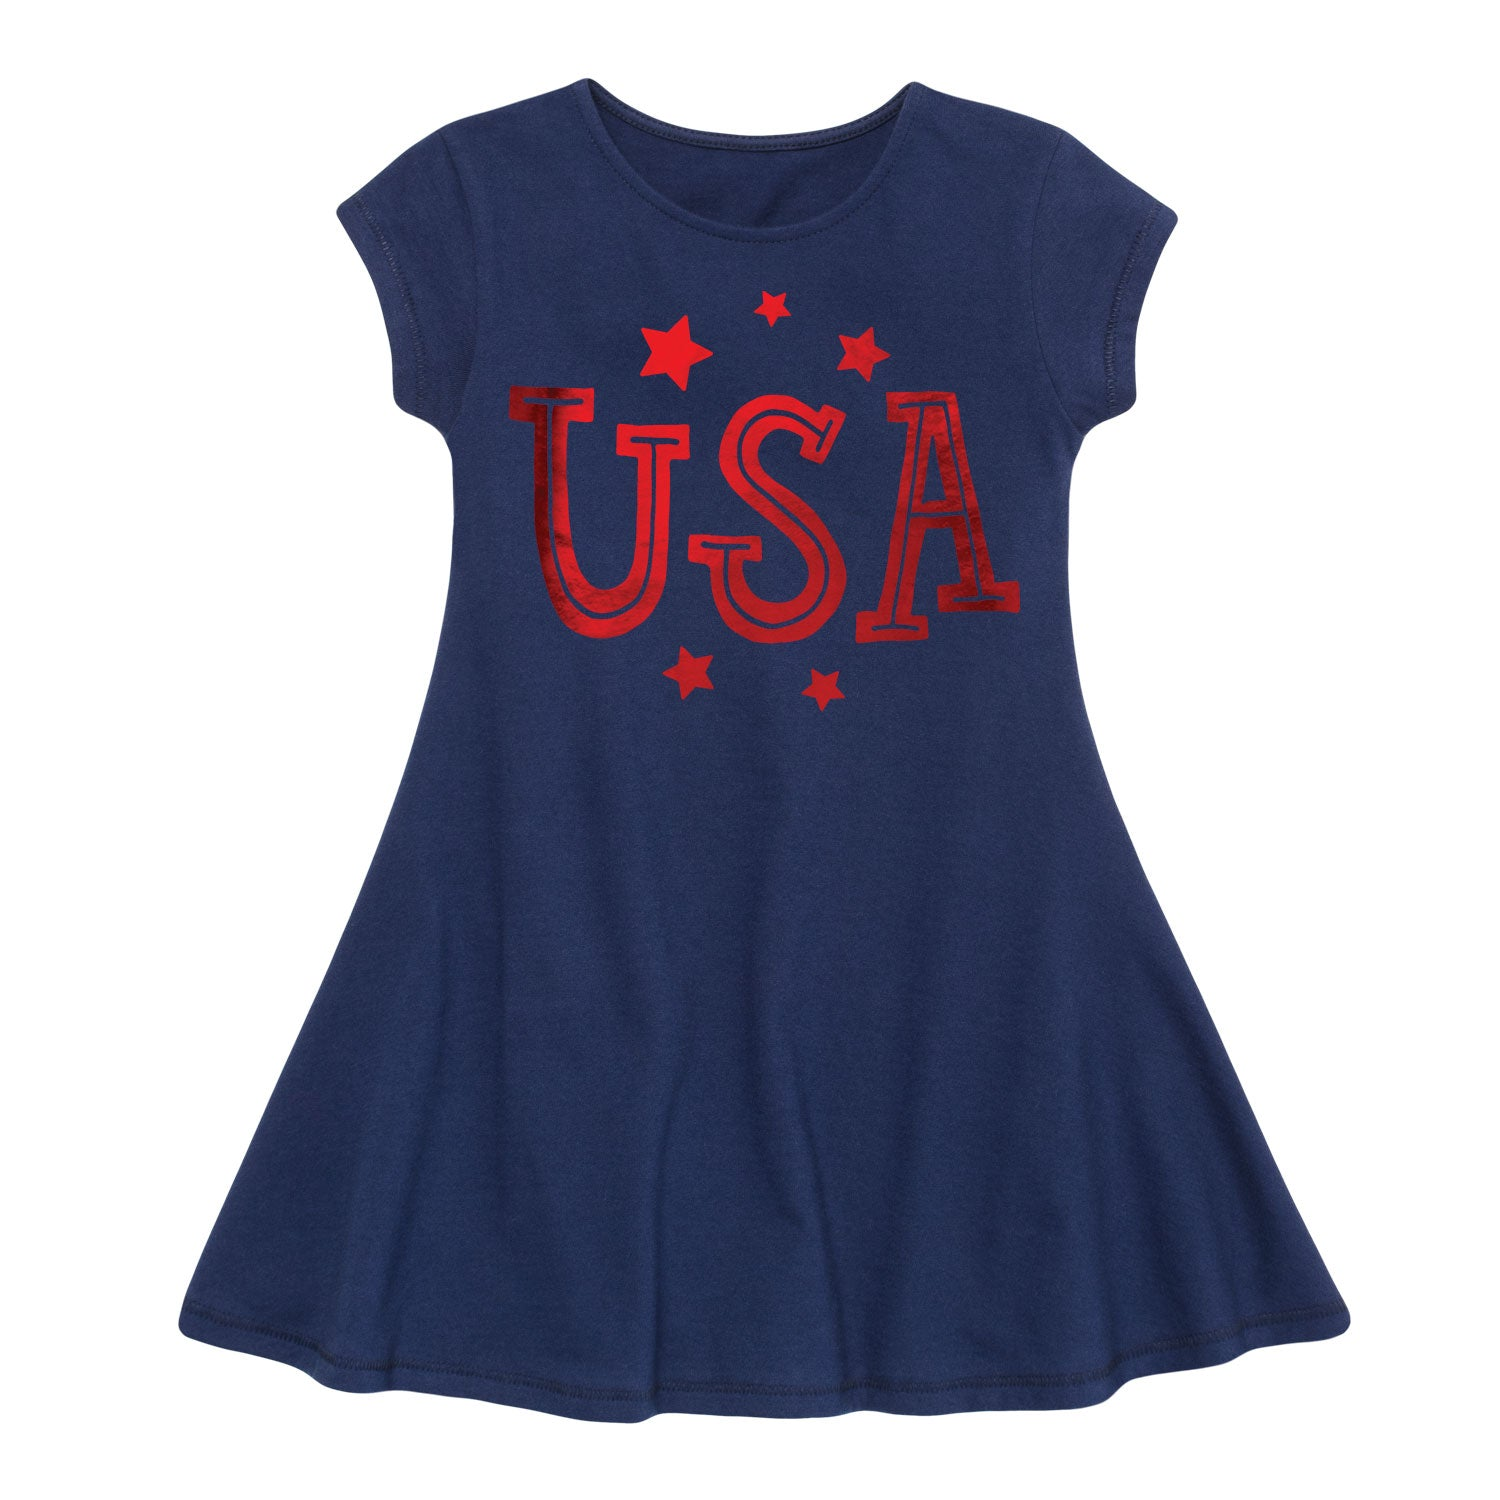 USA - Youth Girl Fit And Flare Dress